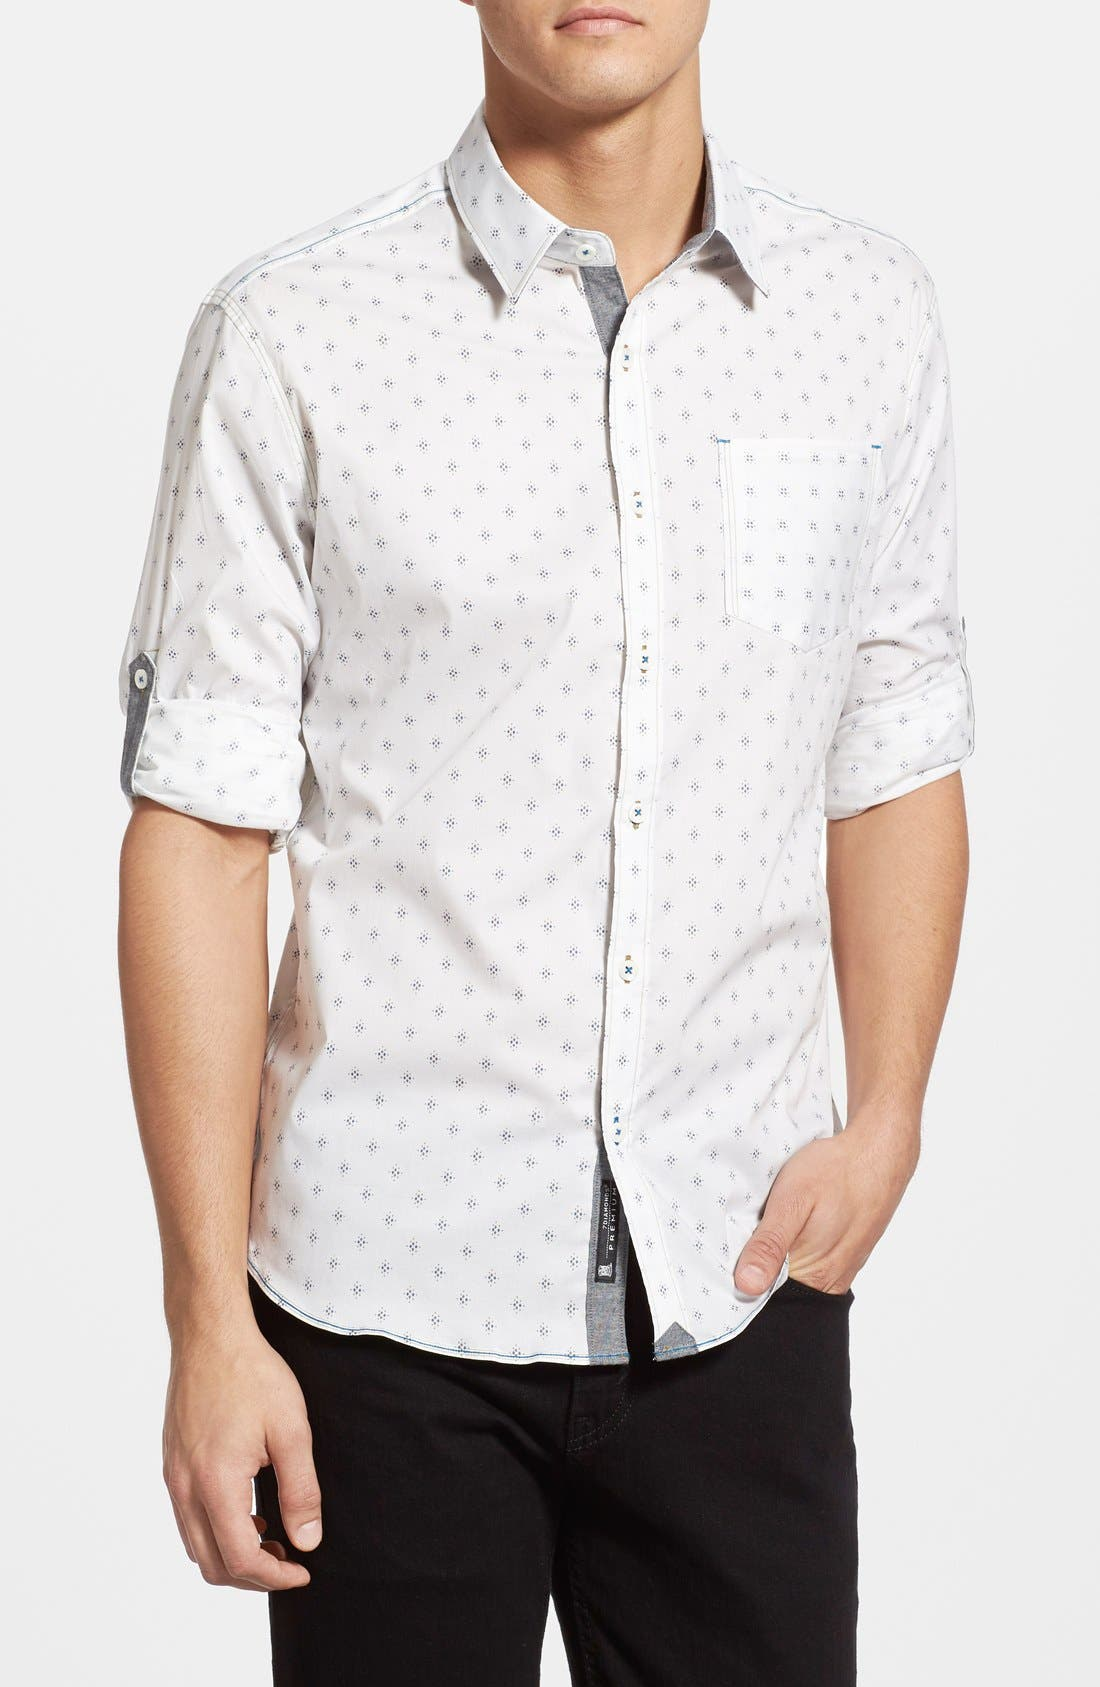 'Reflector' Trim Fit Woven Shirt,                         Main,                         color, 100